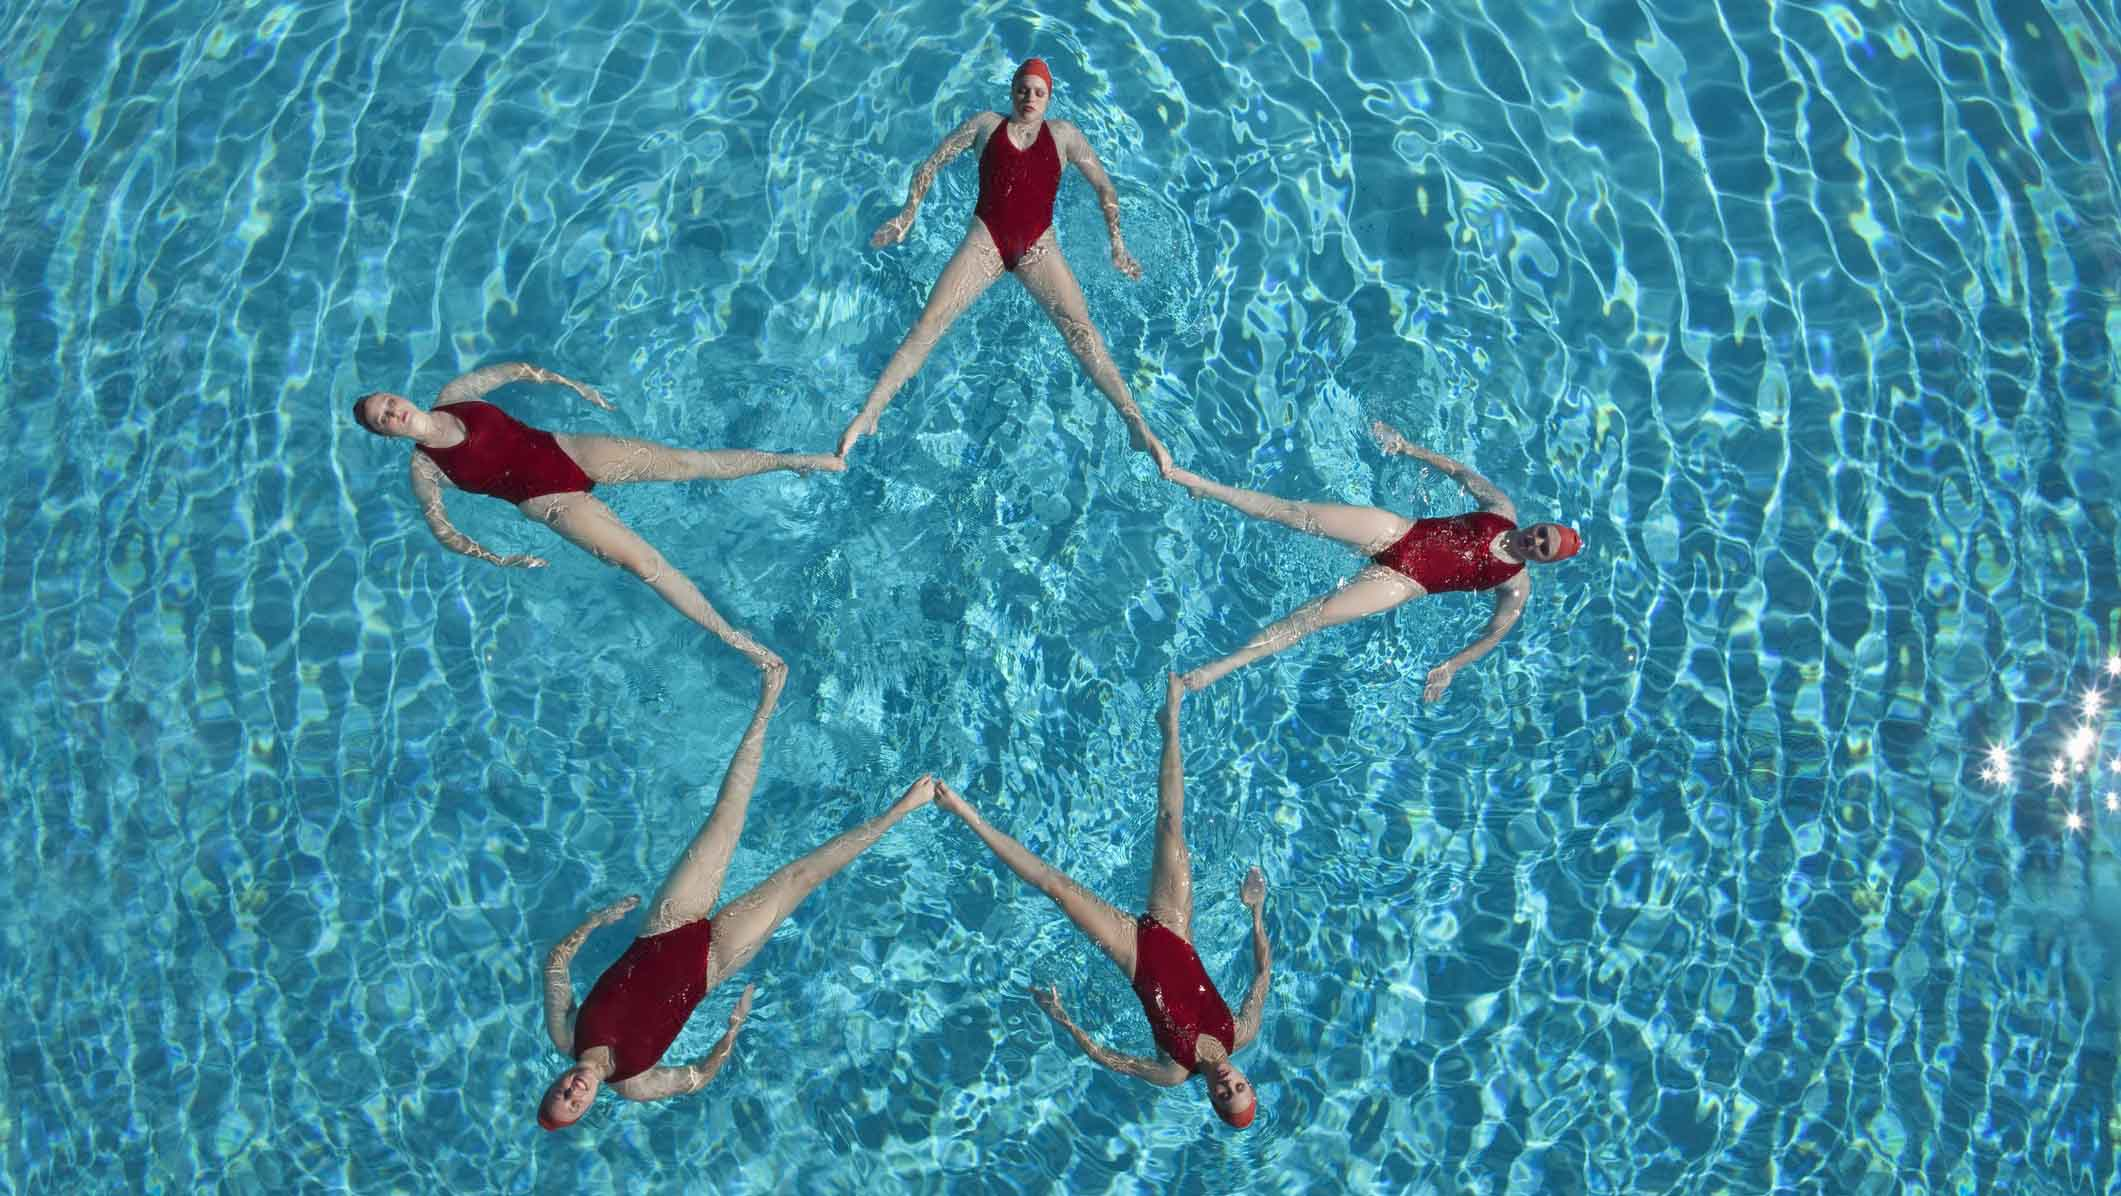 Synchronized swimmers making a star shape in the pool